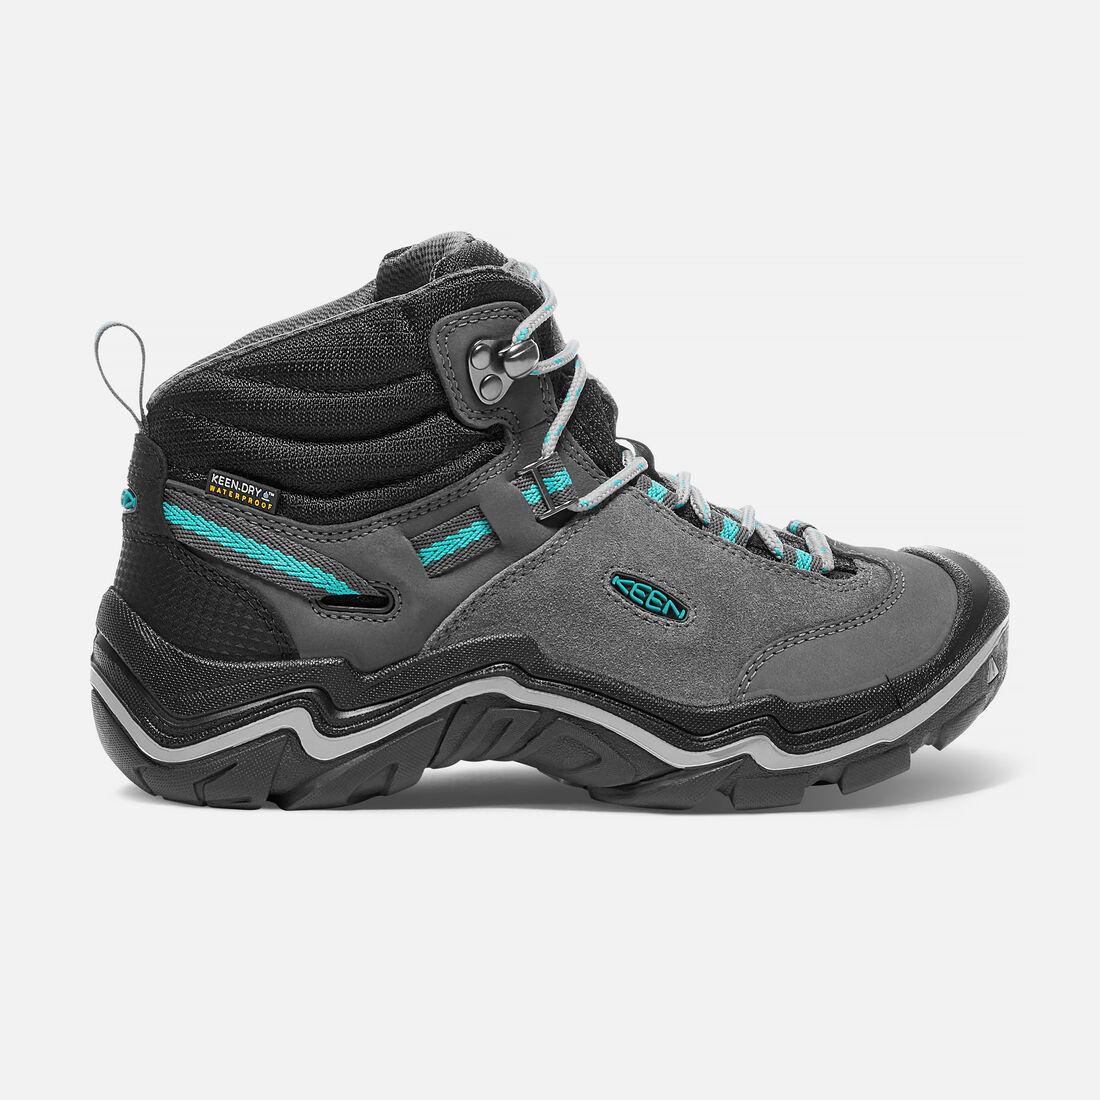 Women s LAUREL Waterproof MID - A women s hiking boot made for ... b81160cfb8fa